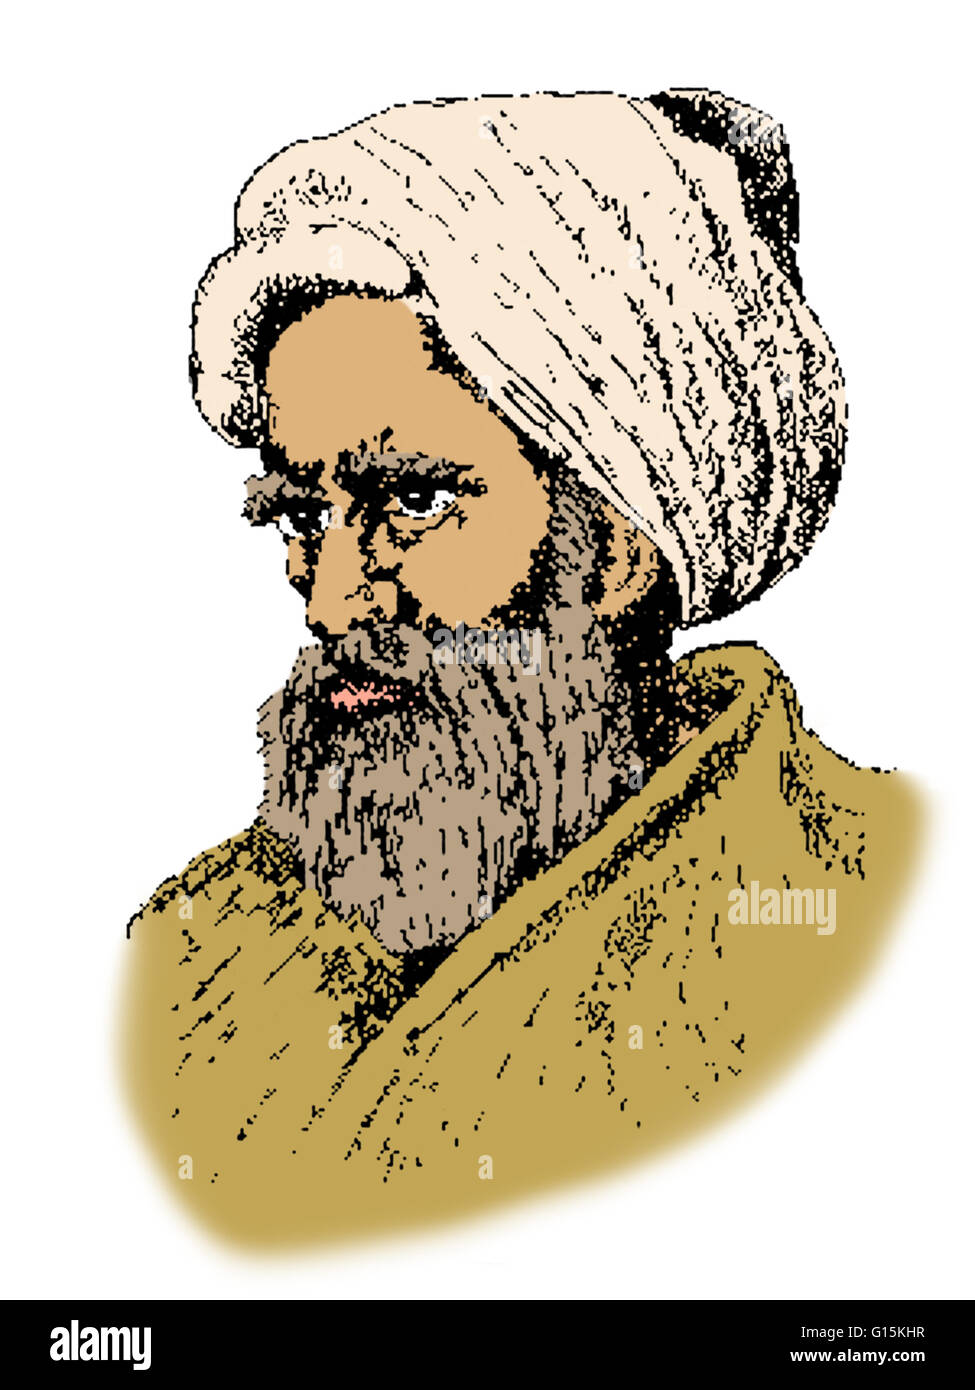 the life and struggles of abu ali al kilawi and dr naji Philip khoury's portrait of abu ali al-kilawi shows us an old-style neighborhood enforcer as presented in the literature these biographies suggest the cgtt) as part of a trend already established by the nineteenth-century ottoman 17.